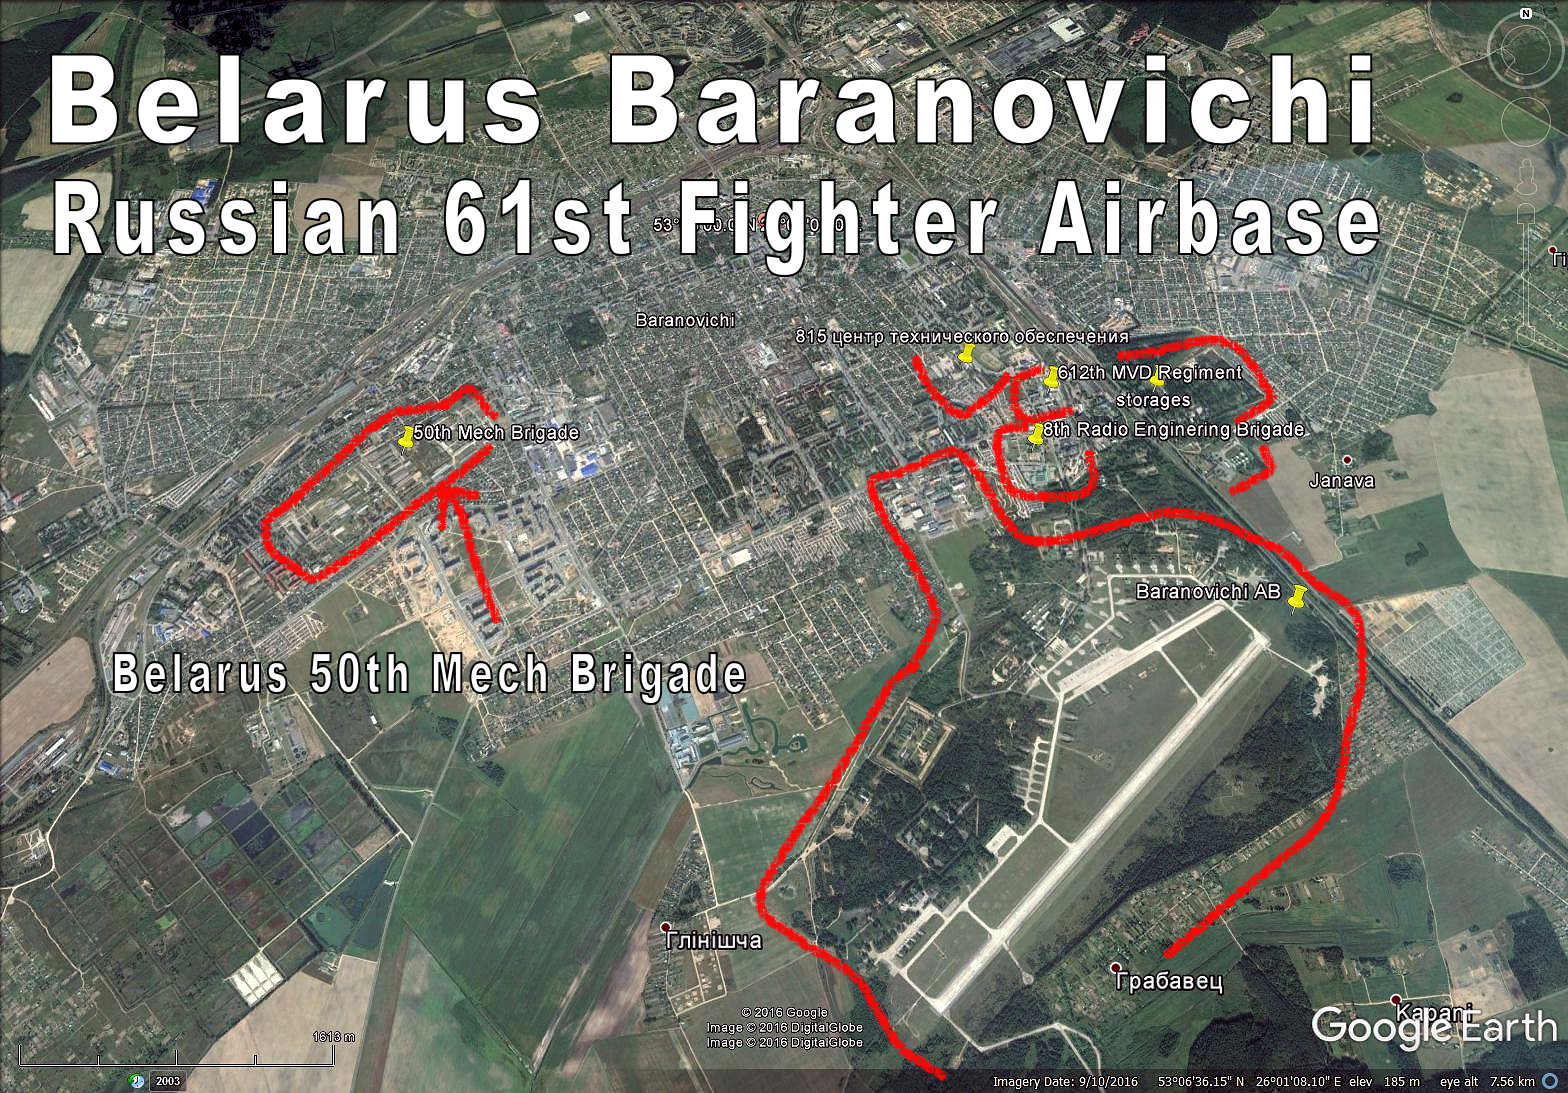 Russia Map Airports%0A Russian Fighter AB in Belarus  Baranovichi  Lots of sub units  ie MVD for  security etc   Whole city is a major railroad hub and has also heavy  Belarus